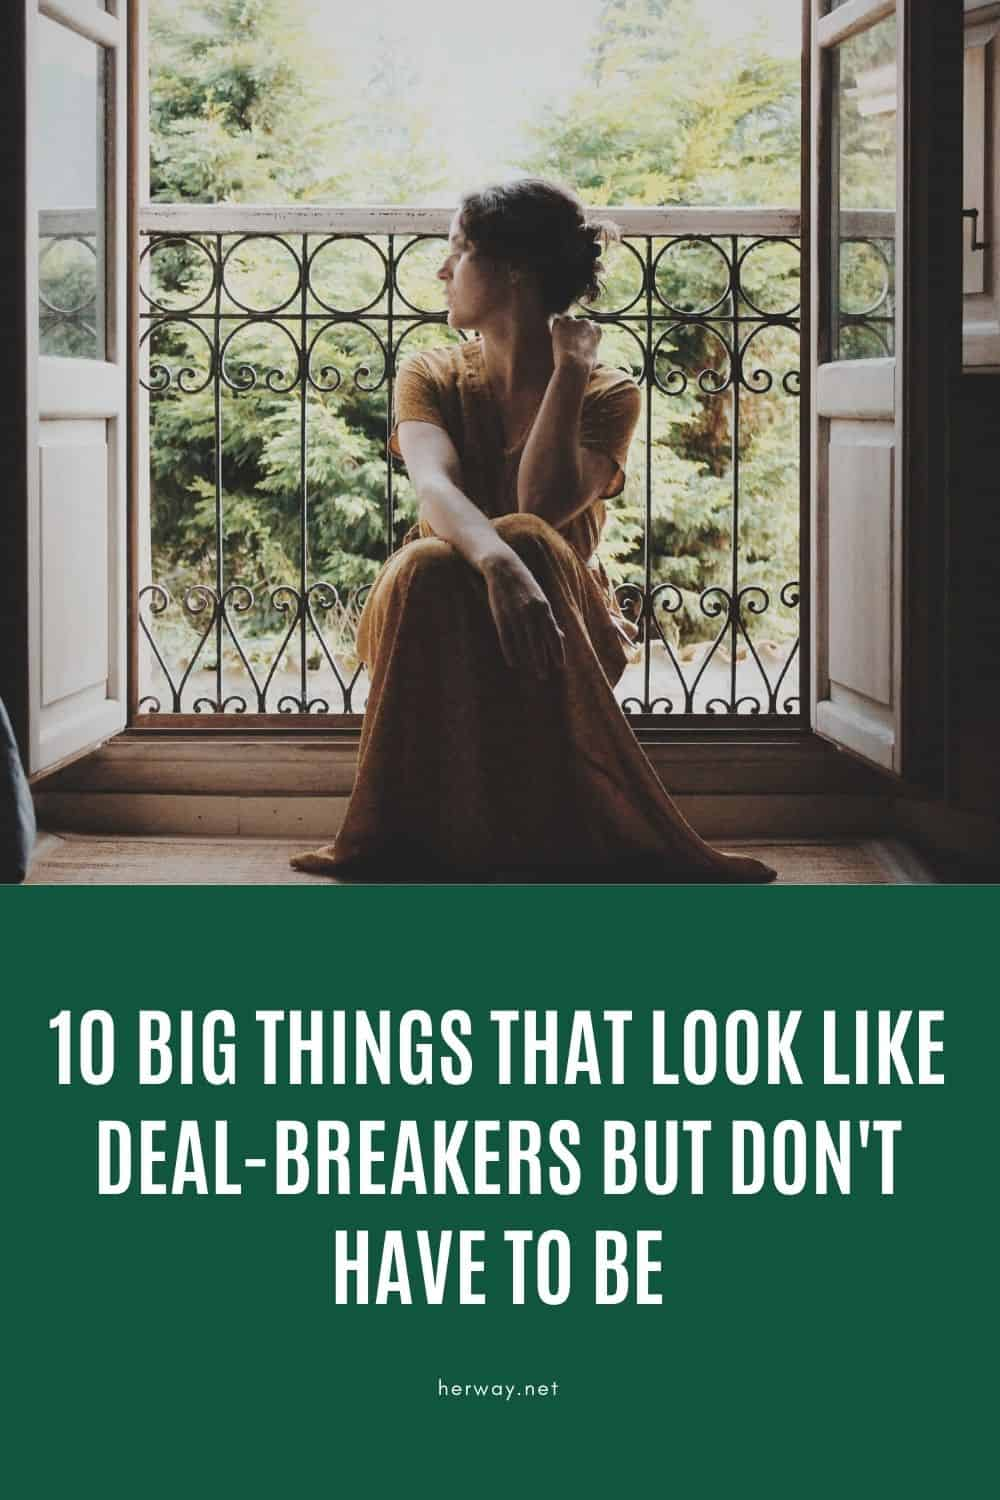 10 Big Things That Look Like Deal-Breakers But Don't Have To Be